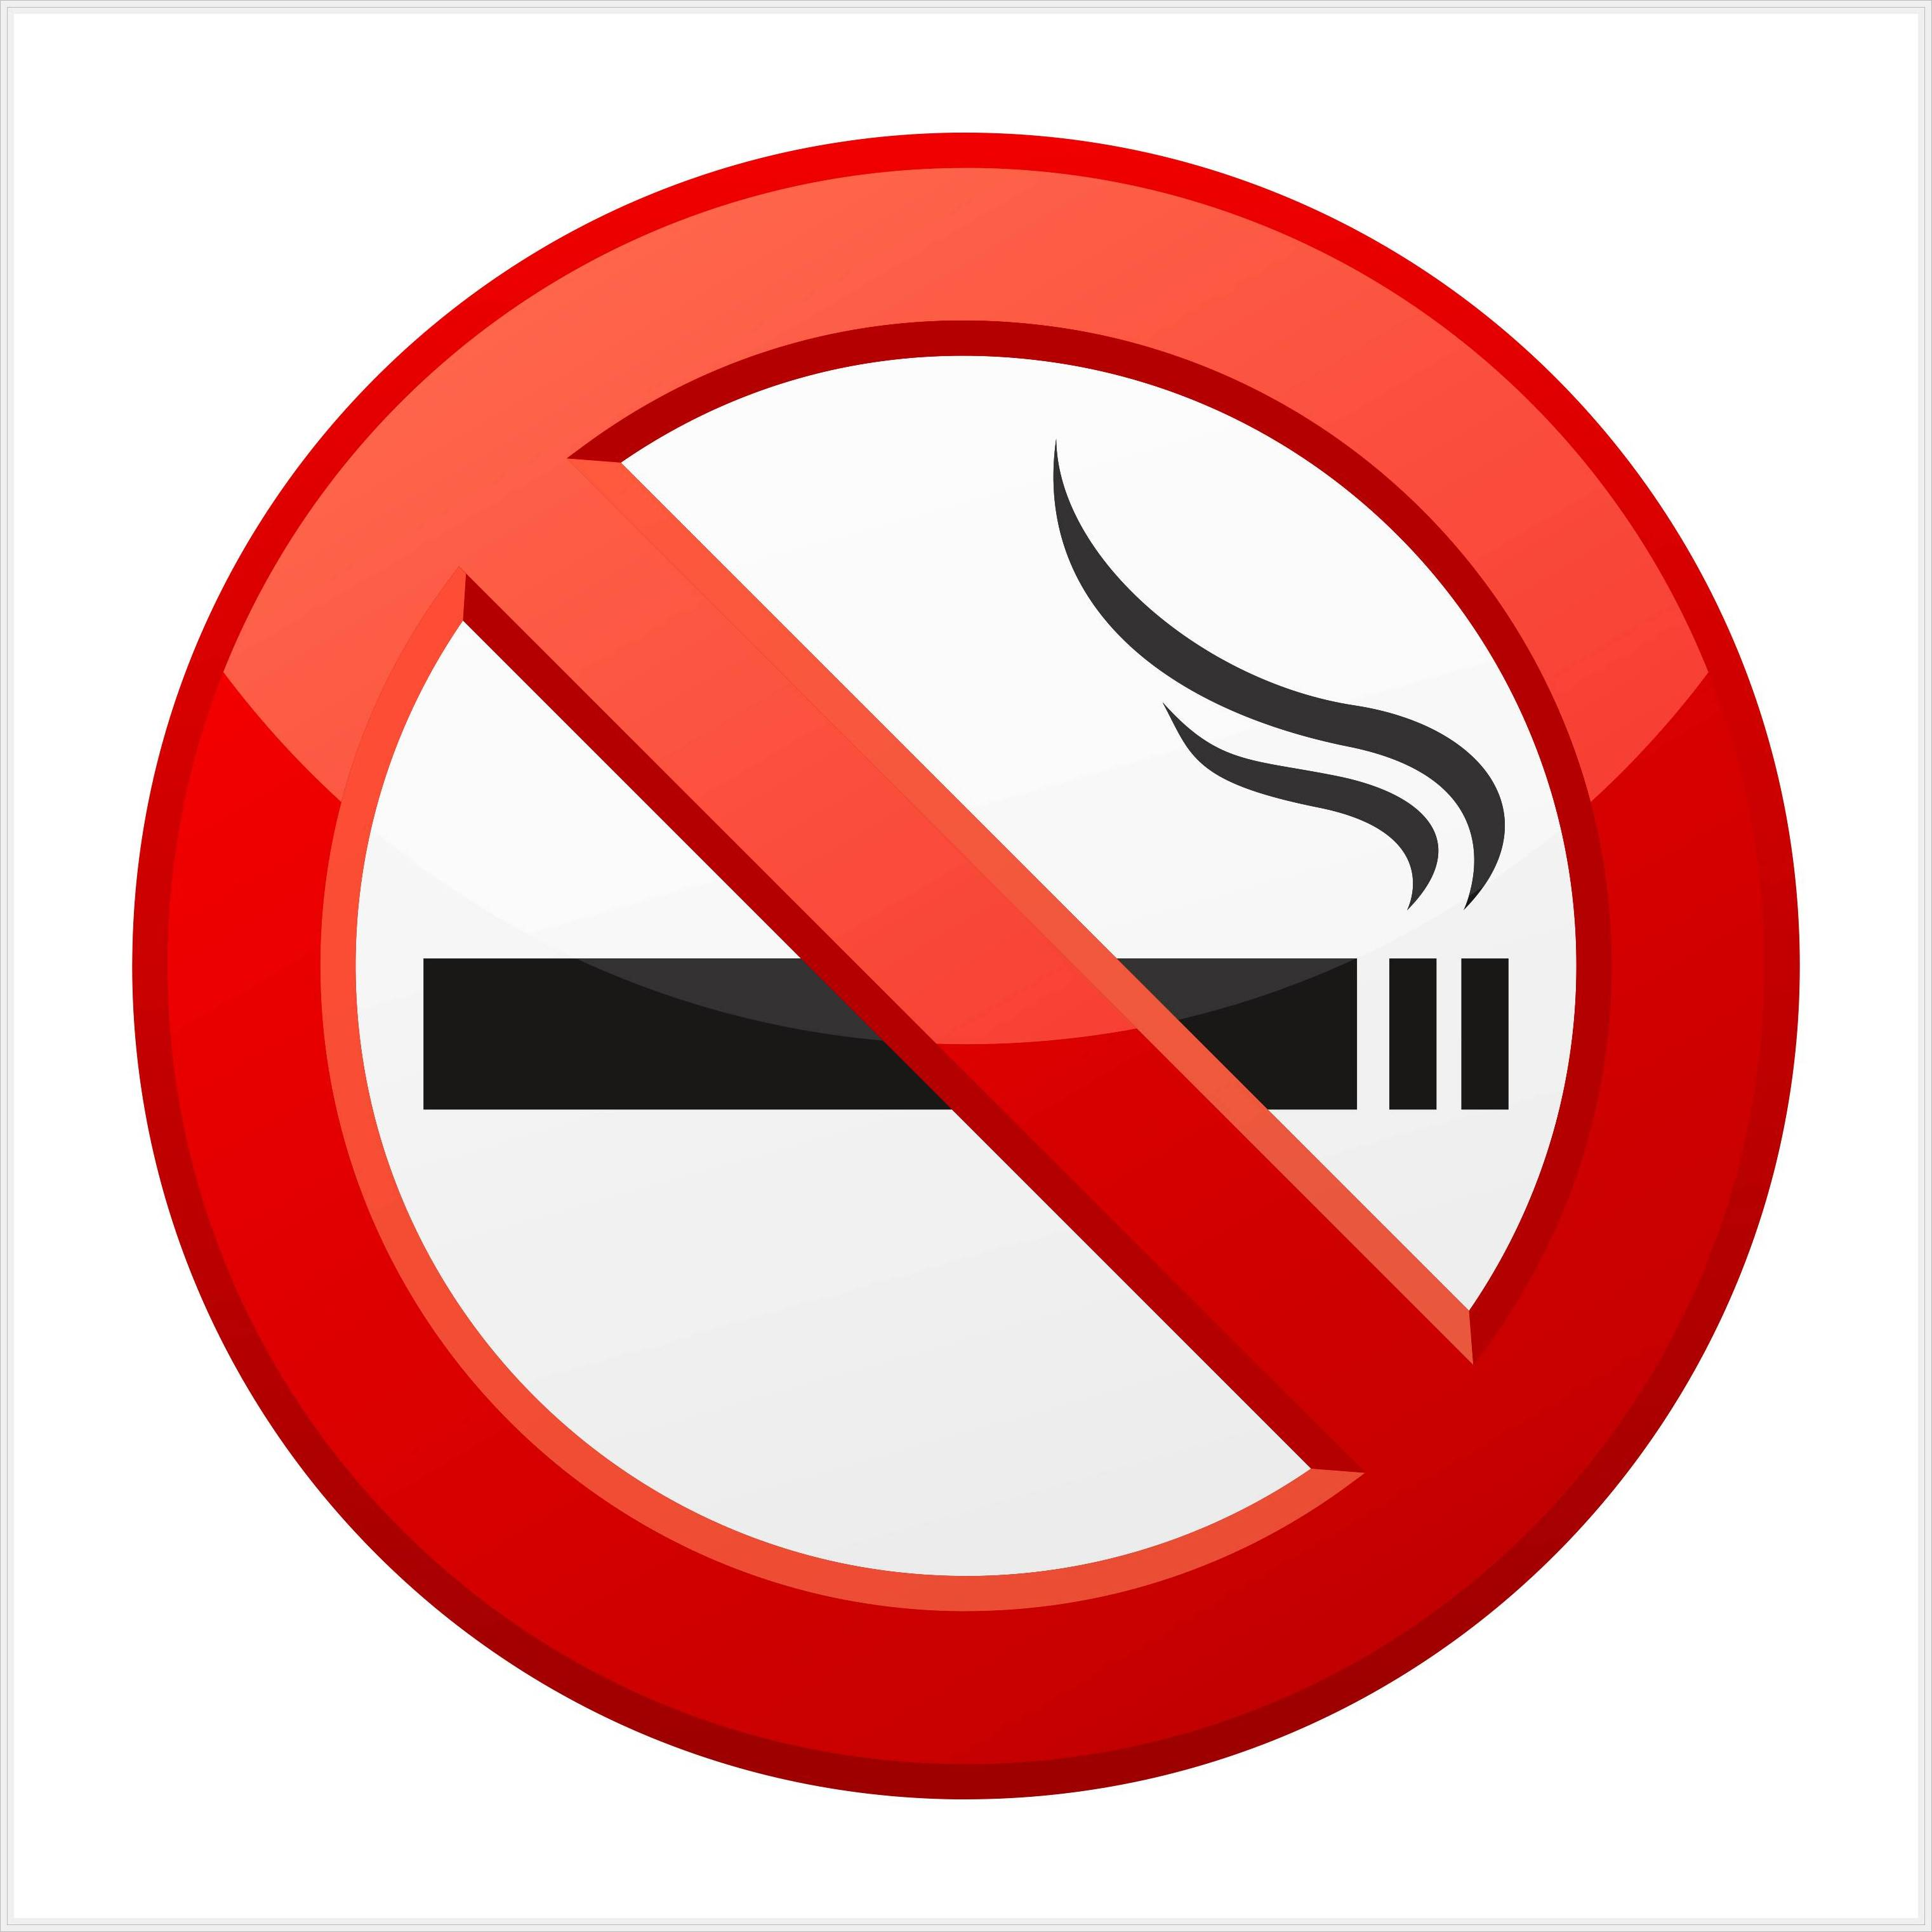 No Smoking Day Hd Wallpapers Images On Secret Hunt 3044x3044PX 3044x3044